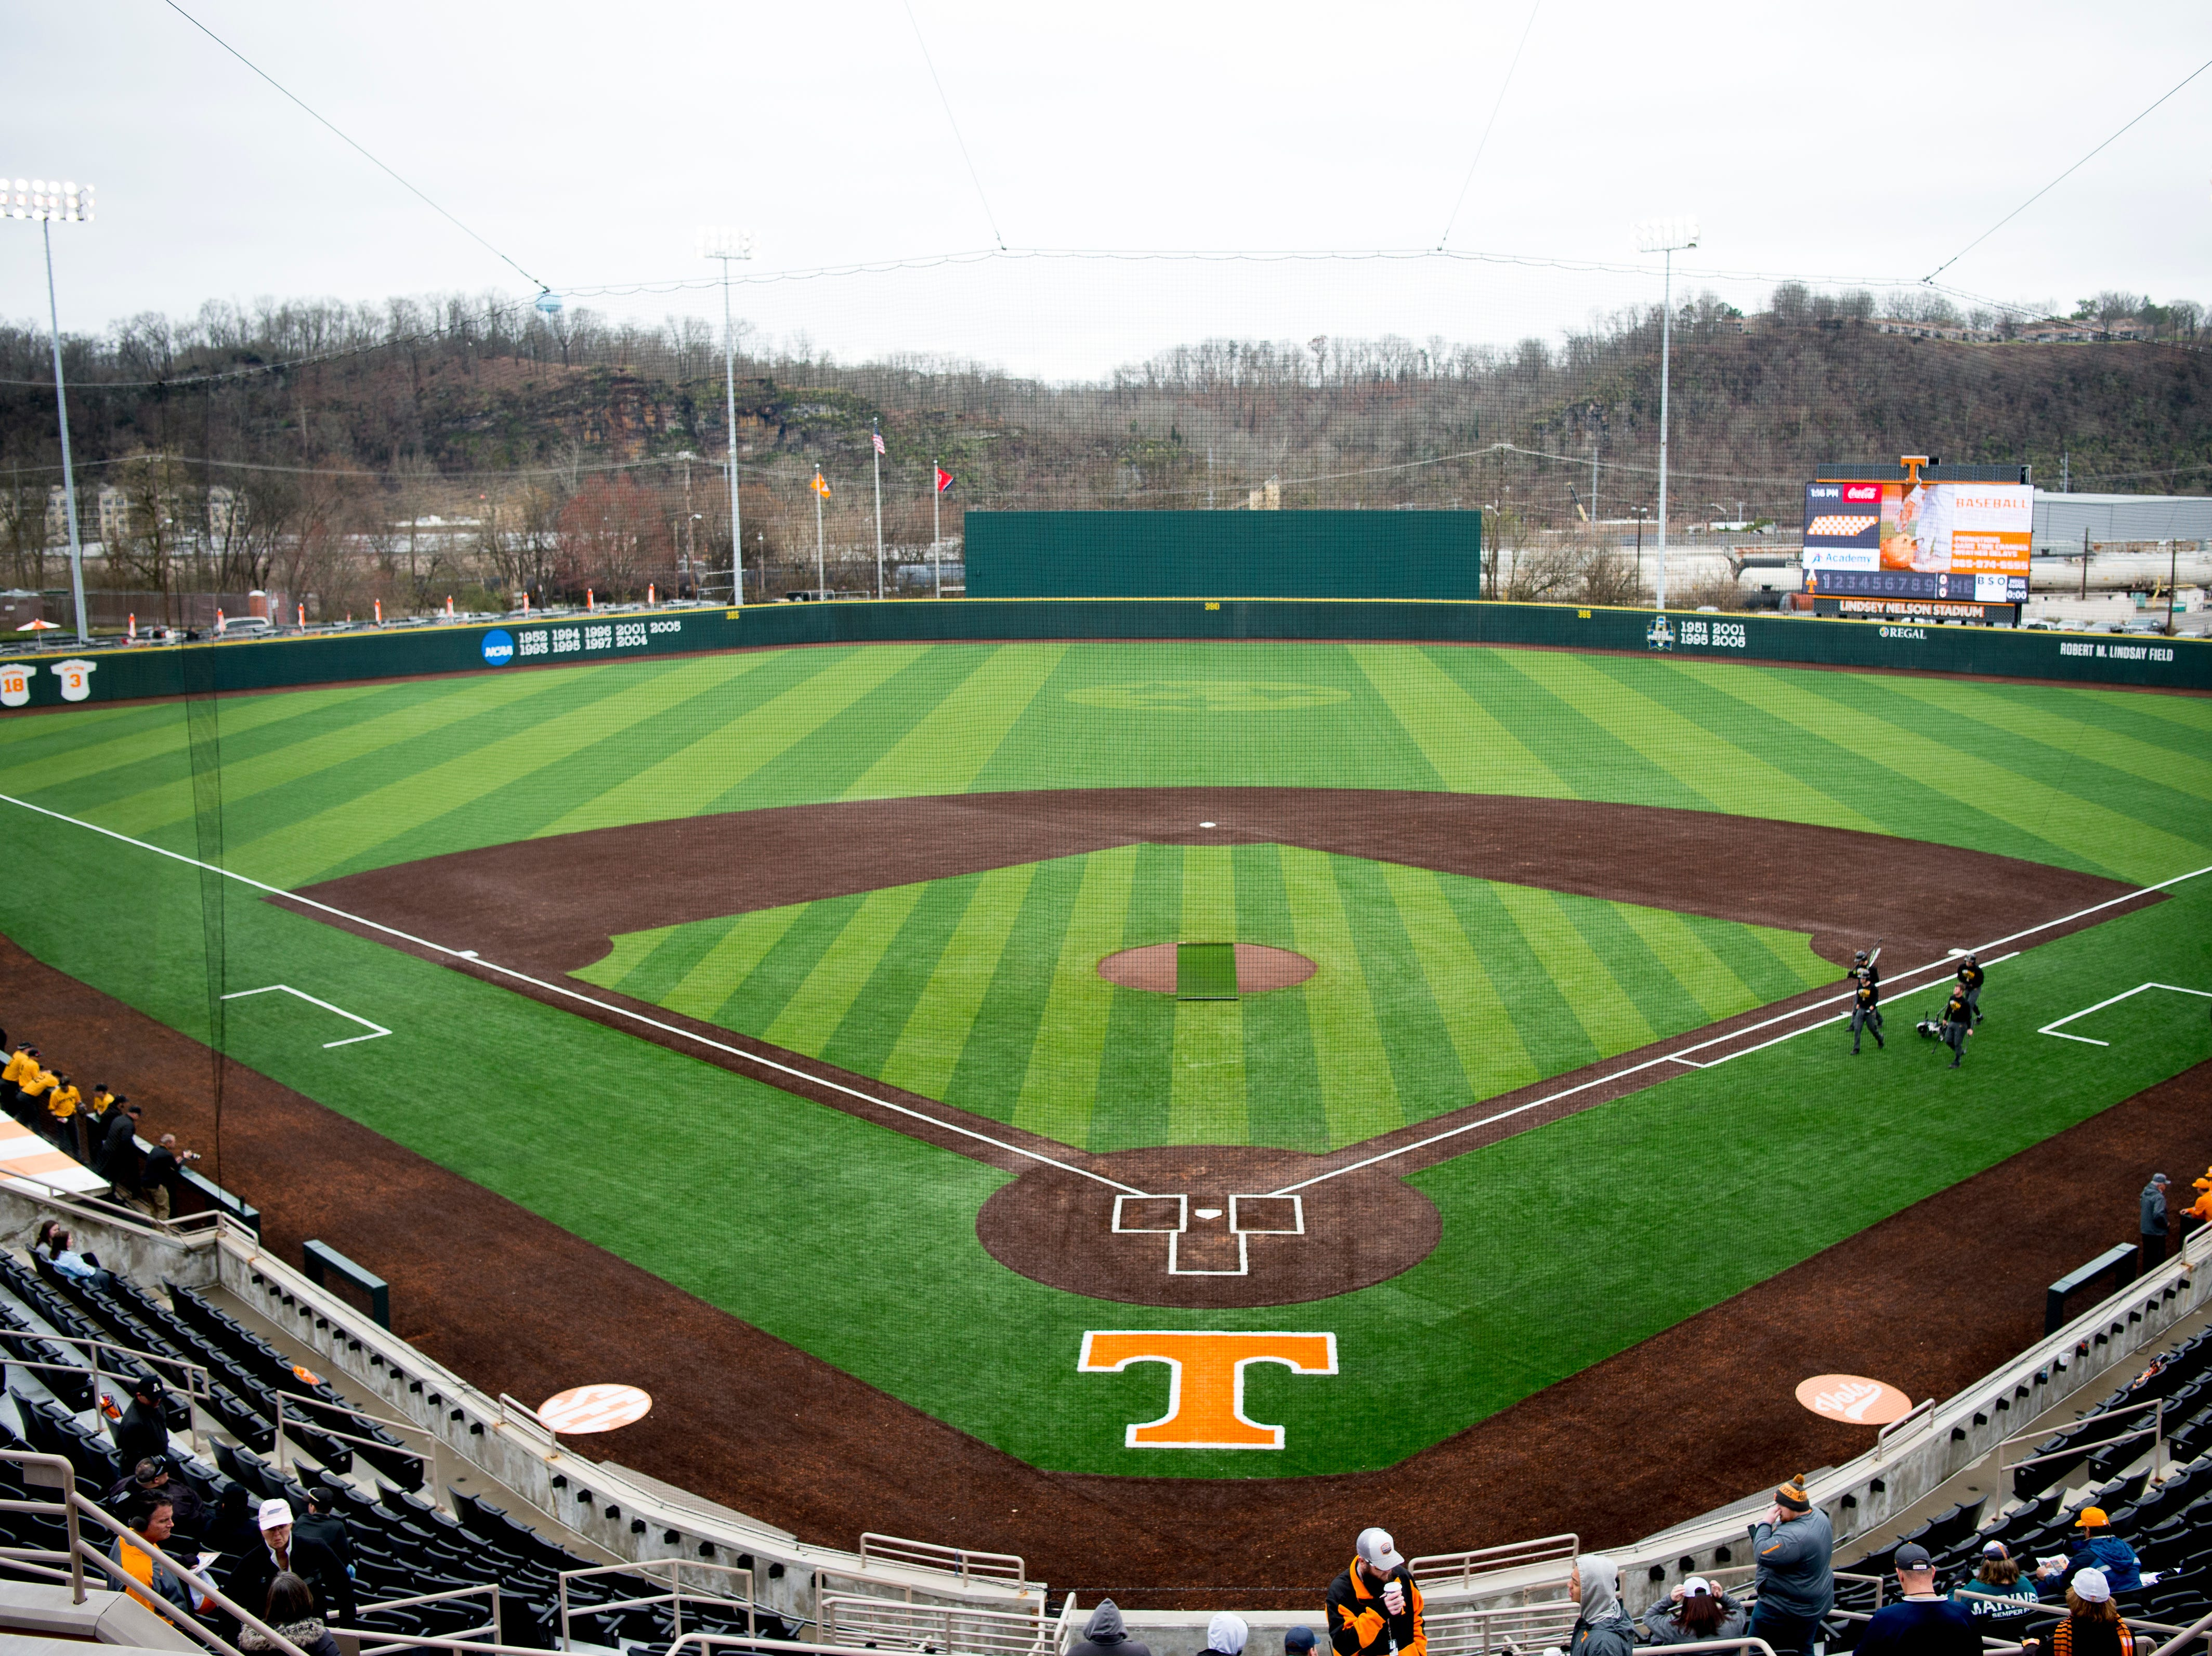 The all-new turf field at Lindsey Nelson Stadium in Knoxville, Tennessee on Saturday, February 16, 2019. The pitchers mound is the only part of the field that remains dirt.